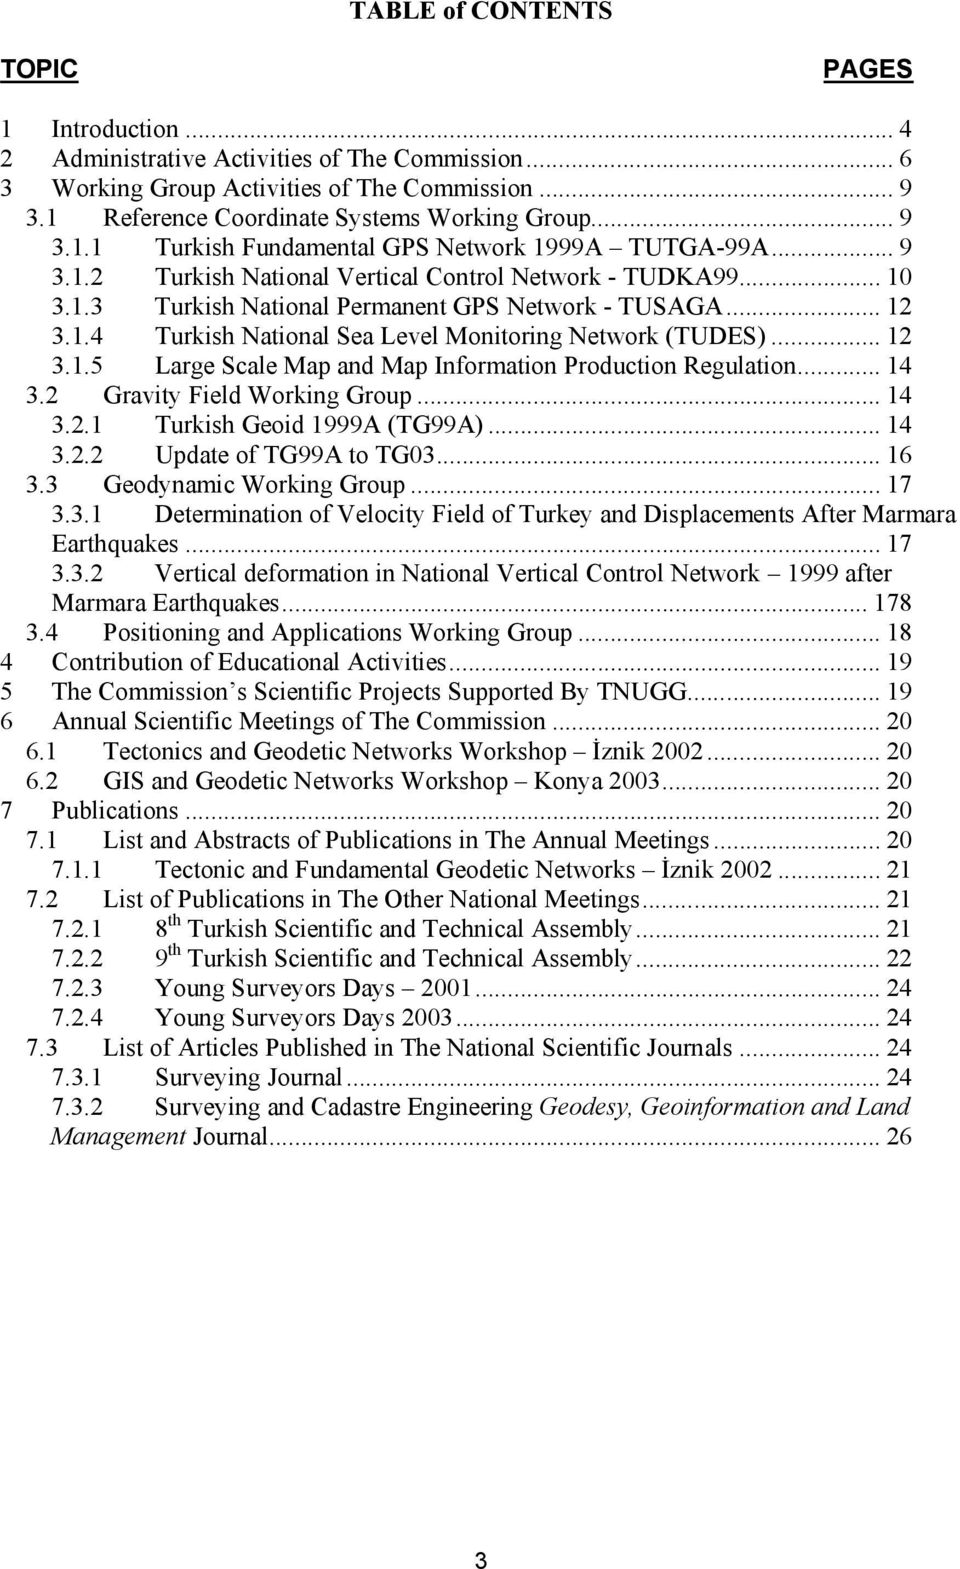 .. 12 3.1.5 Large Scale Map and Map Information Production Regulation... 14 3.2 Gravity Field Working Group... 14 3.2.1 Turkish Geoid 1999A (TG99A)... 14 3.2.2 Update of TG99A to TG03... 16 3.